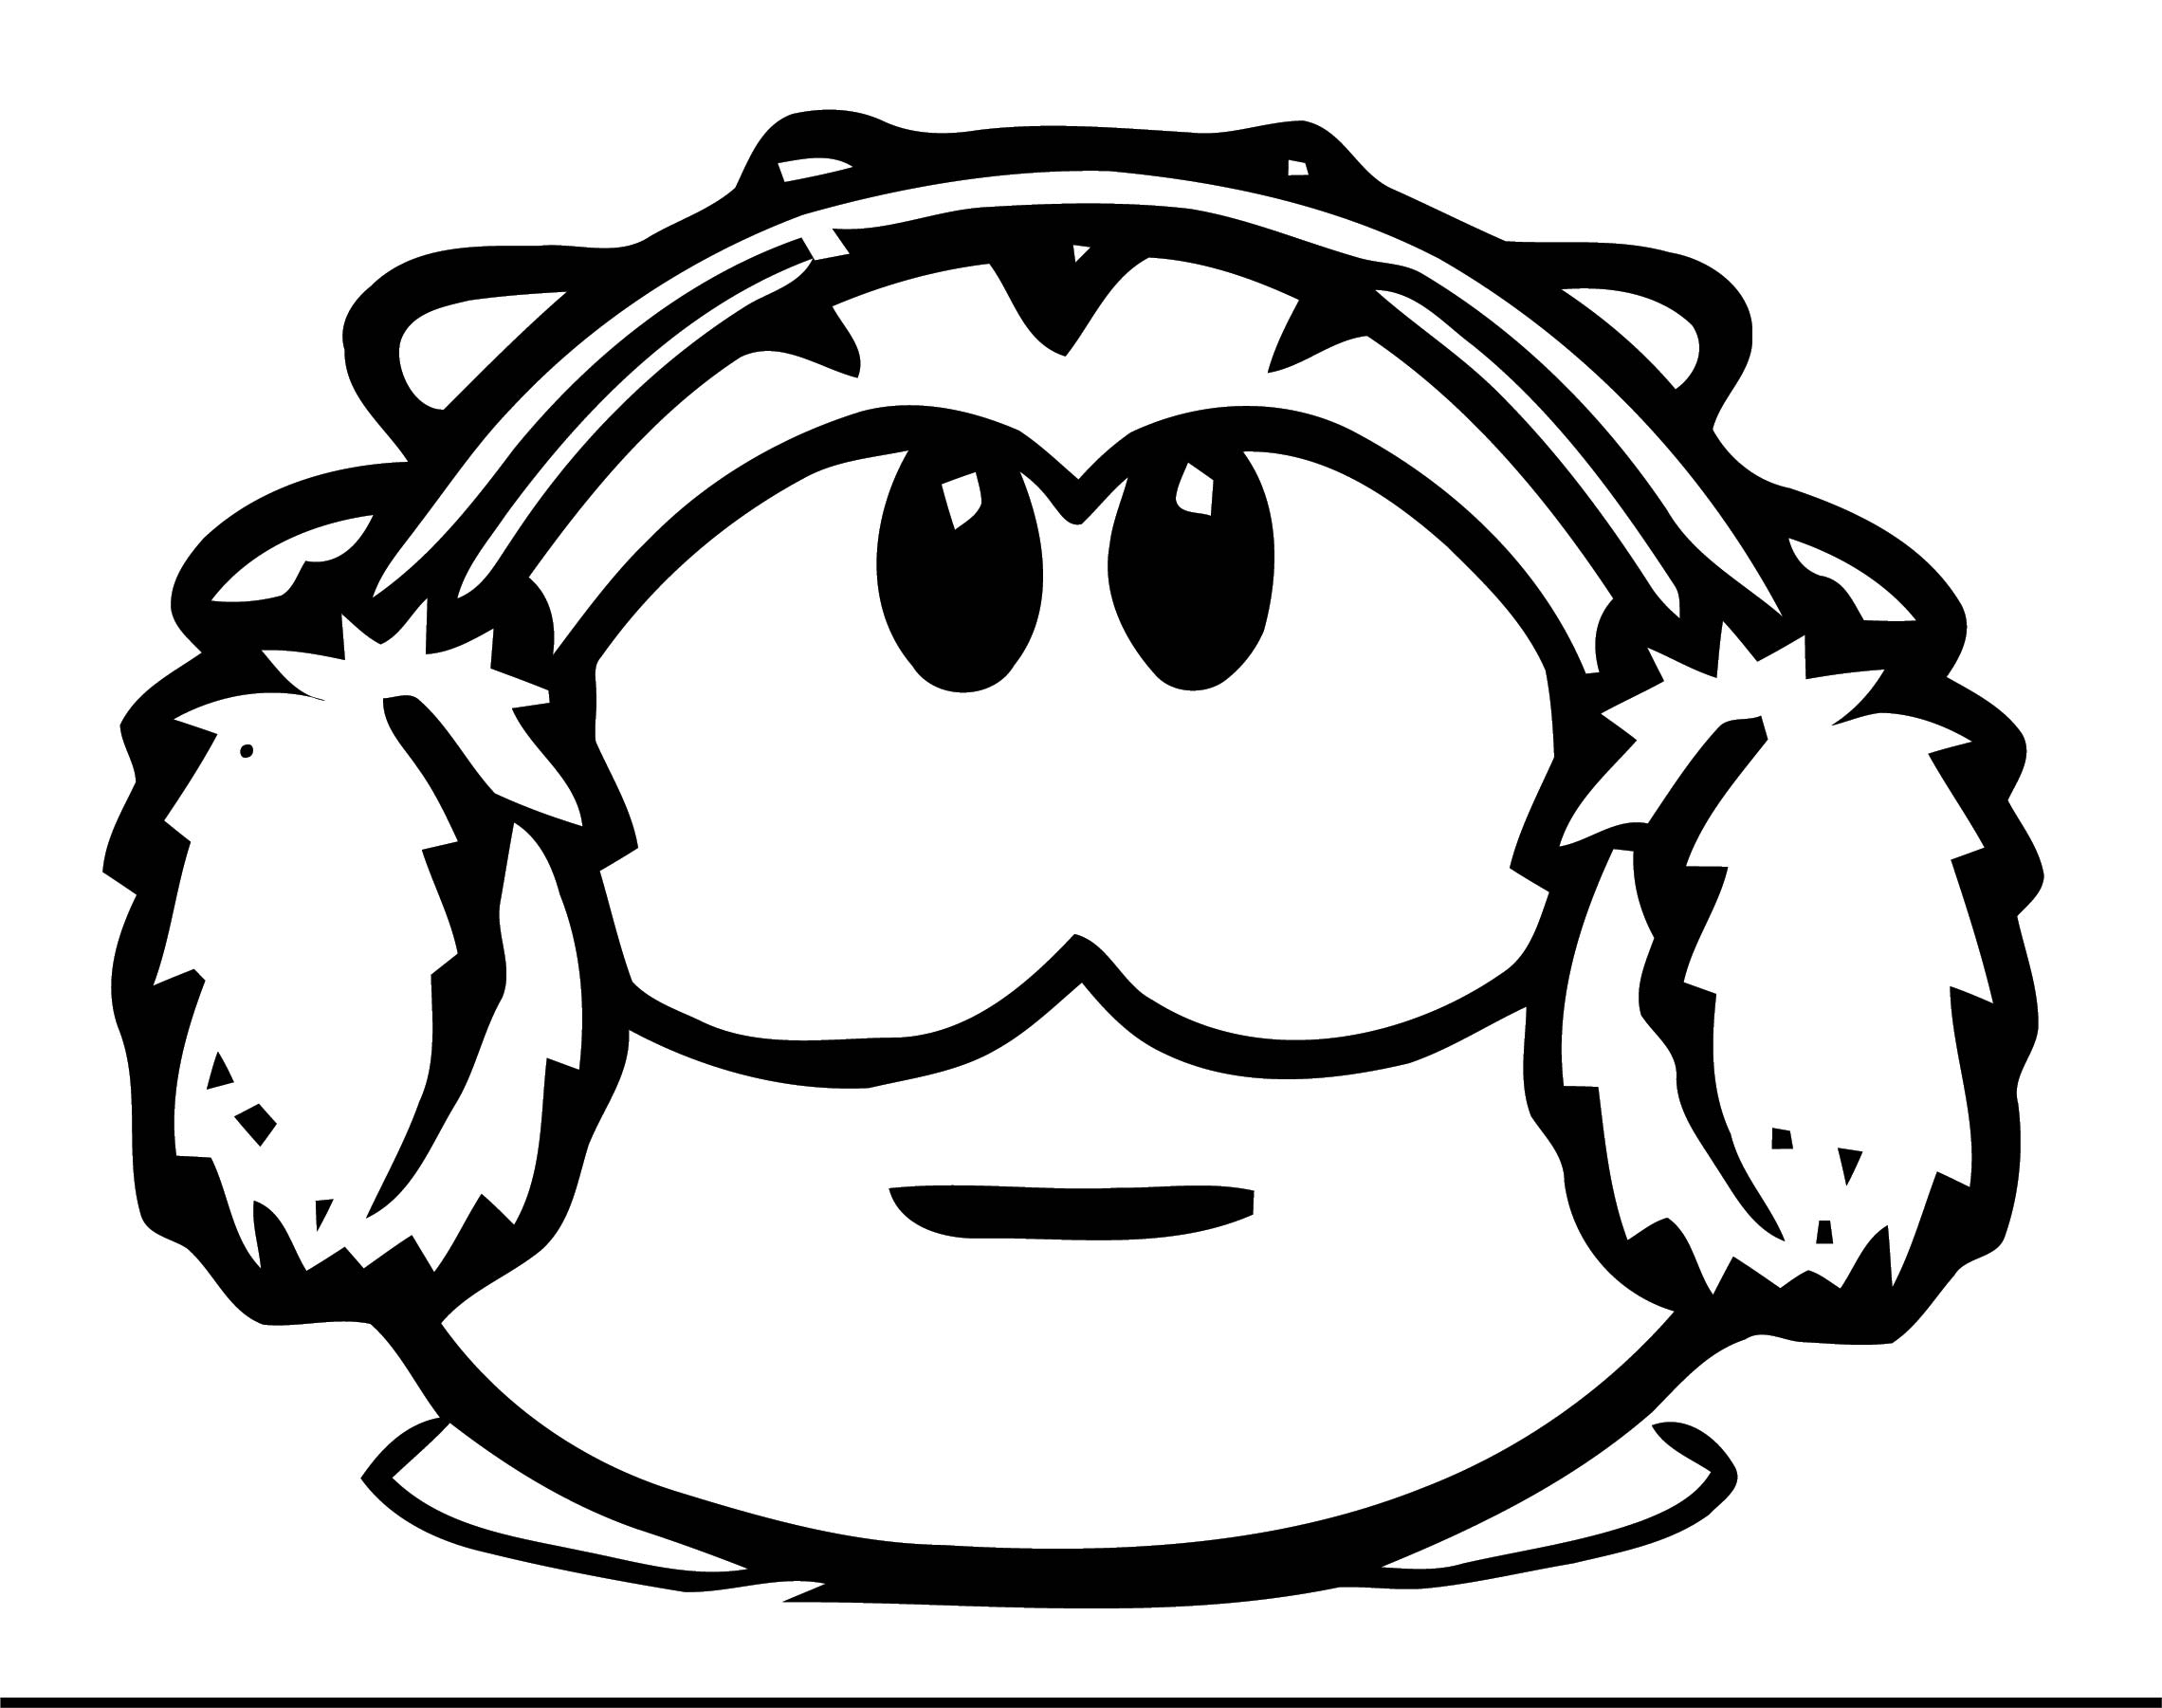 puffle coloring pages | Be A Puffle On Club Penguin Coloring Page | Wecoloringpage.com